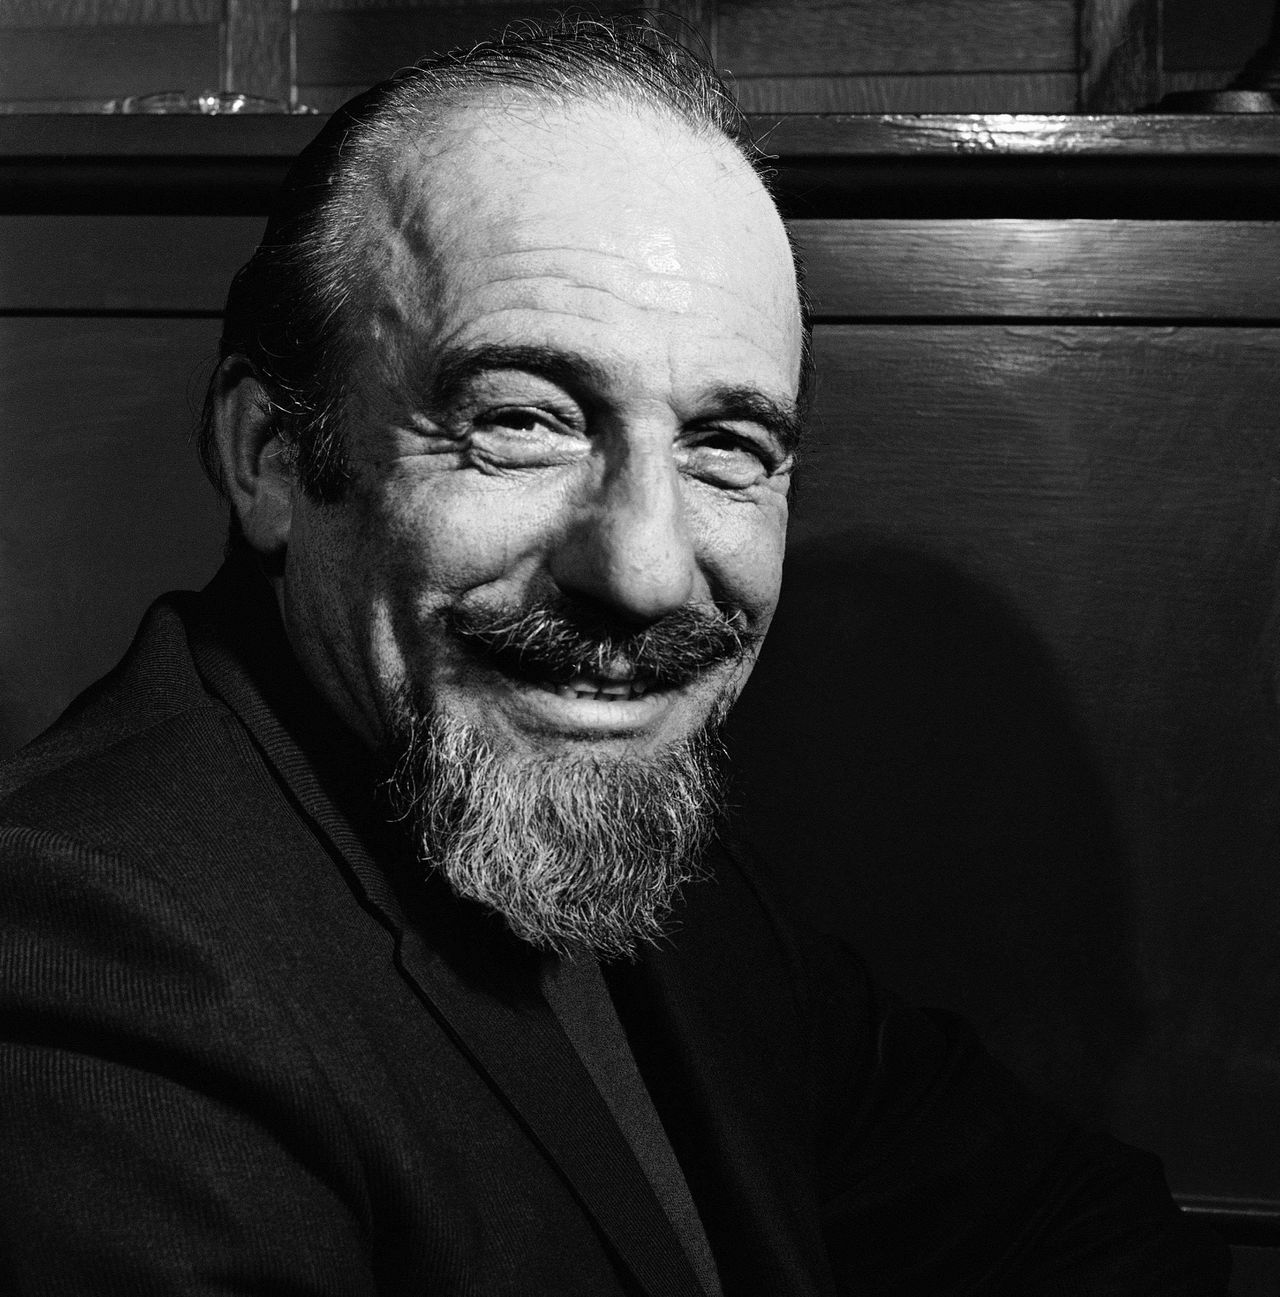 """Mitch Miller in 1968. Foto AP FILE - In this file photo of Jan. 5, 1968, conductor Mitch Miller is seen at the Billy Rose Theater in New York. Miller, the goateed orchestra leader who asked Americans to """"Sing Along With Mitch"""" on television and records, has died at age 99. His daughter said Miller died in New York City after a short illness. (AP Photo/Bob Wands, File)"""